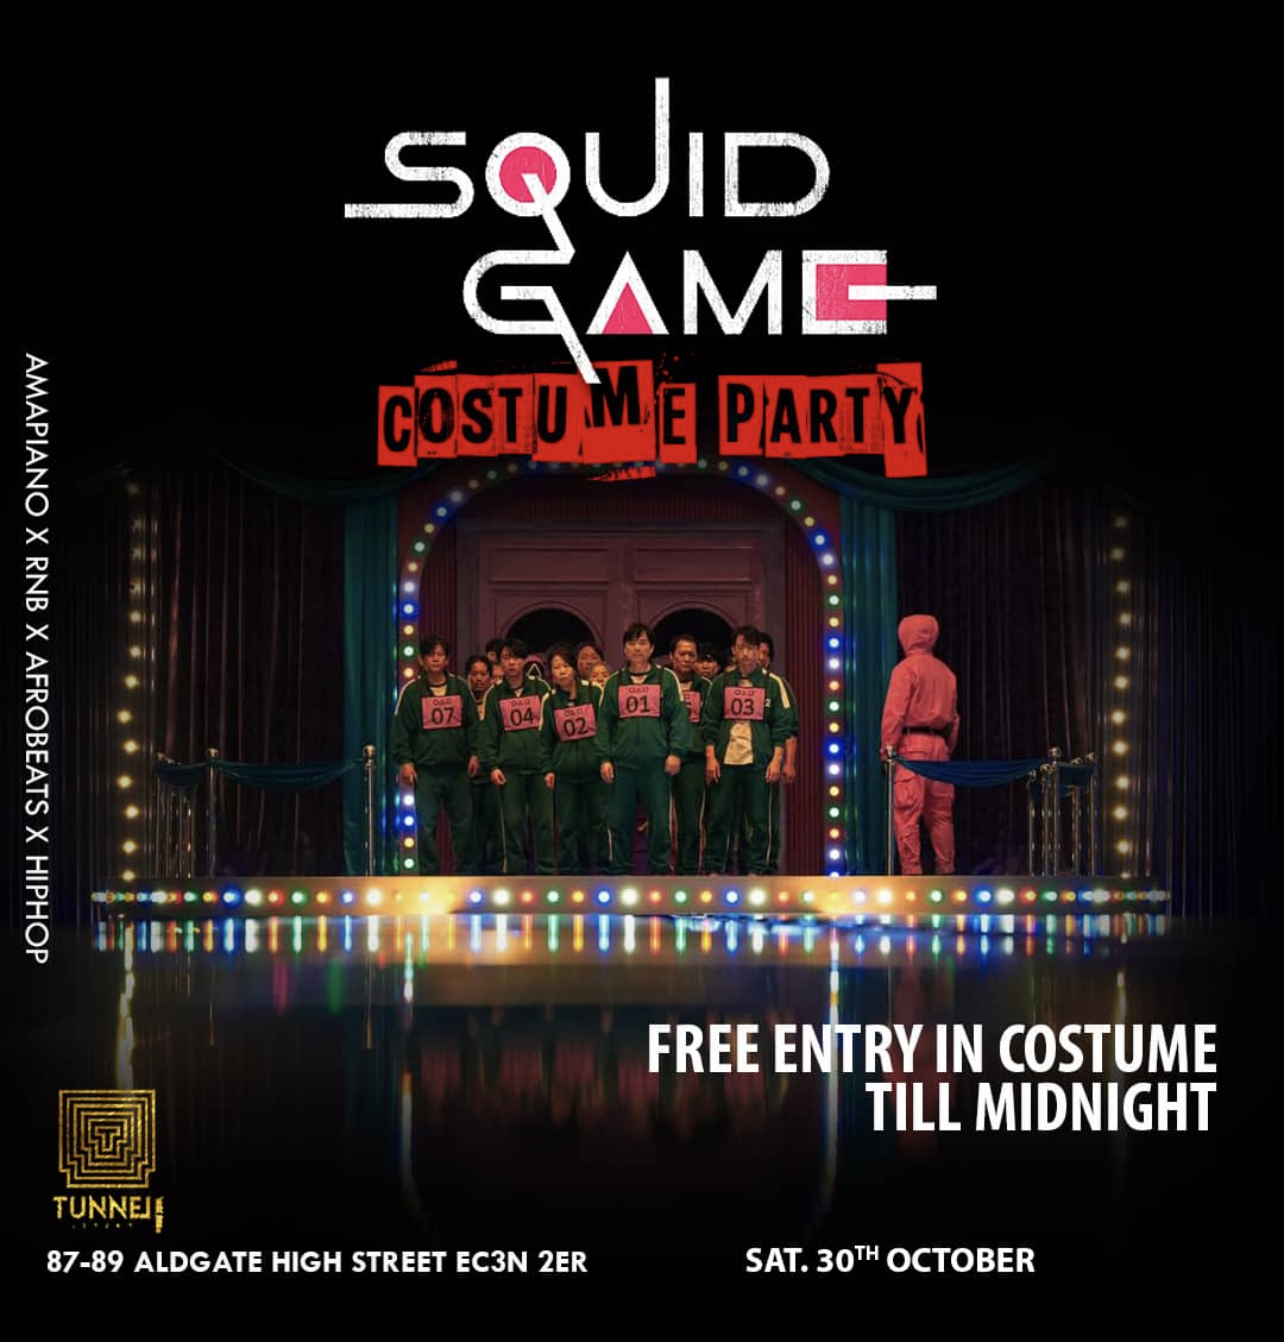 The Squid Game Costume Party